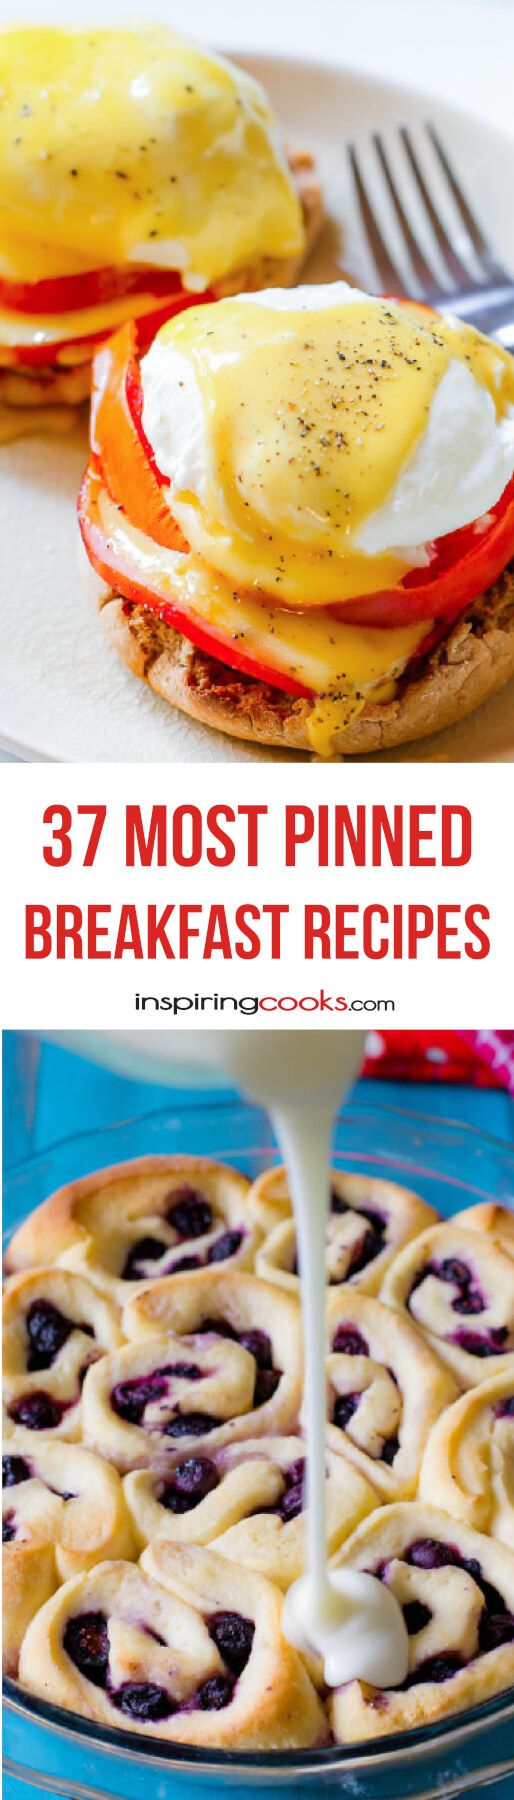 The 37 Most Pinned Breakfast Recipes  Best Recipes On Pinterest French  Toast